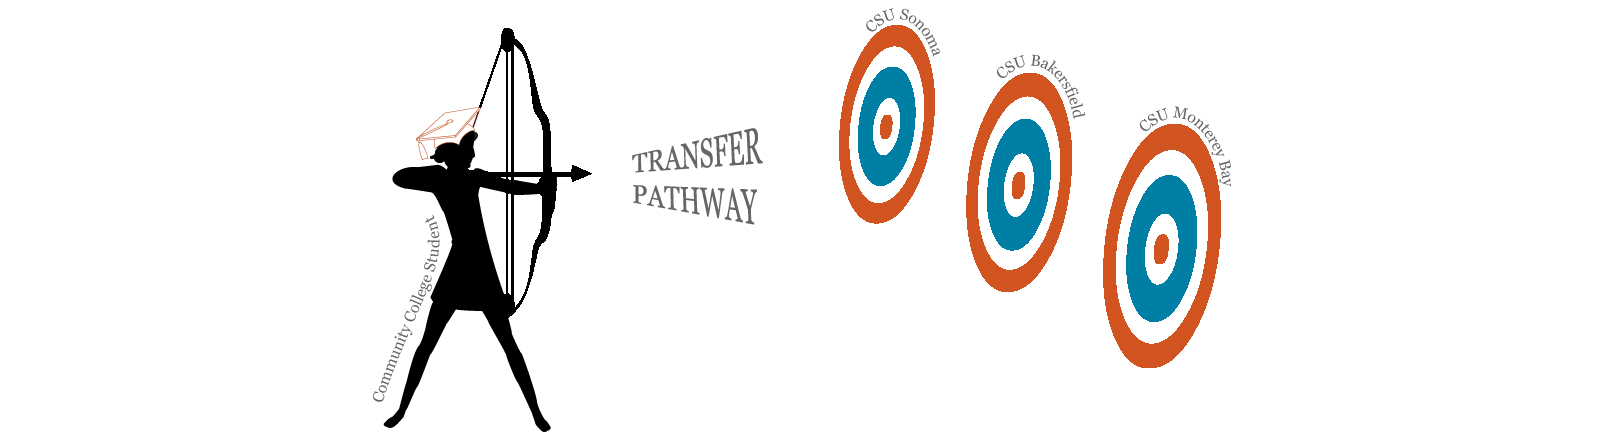 Transfer-Pathway-Reform_archer